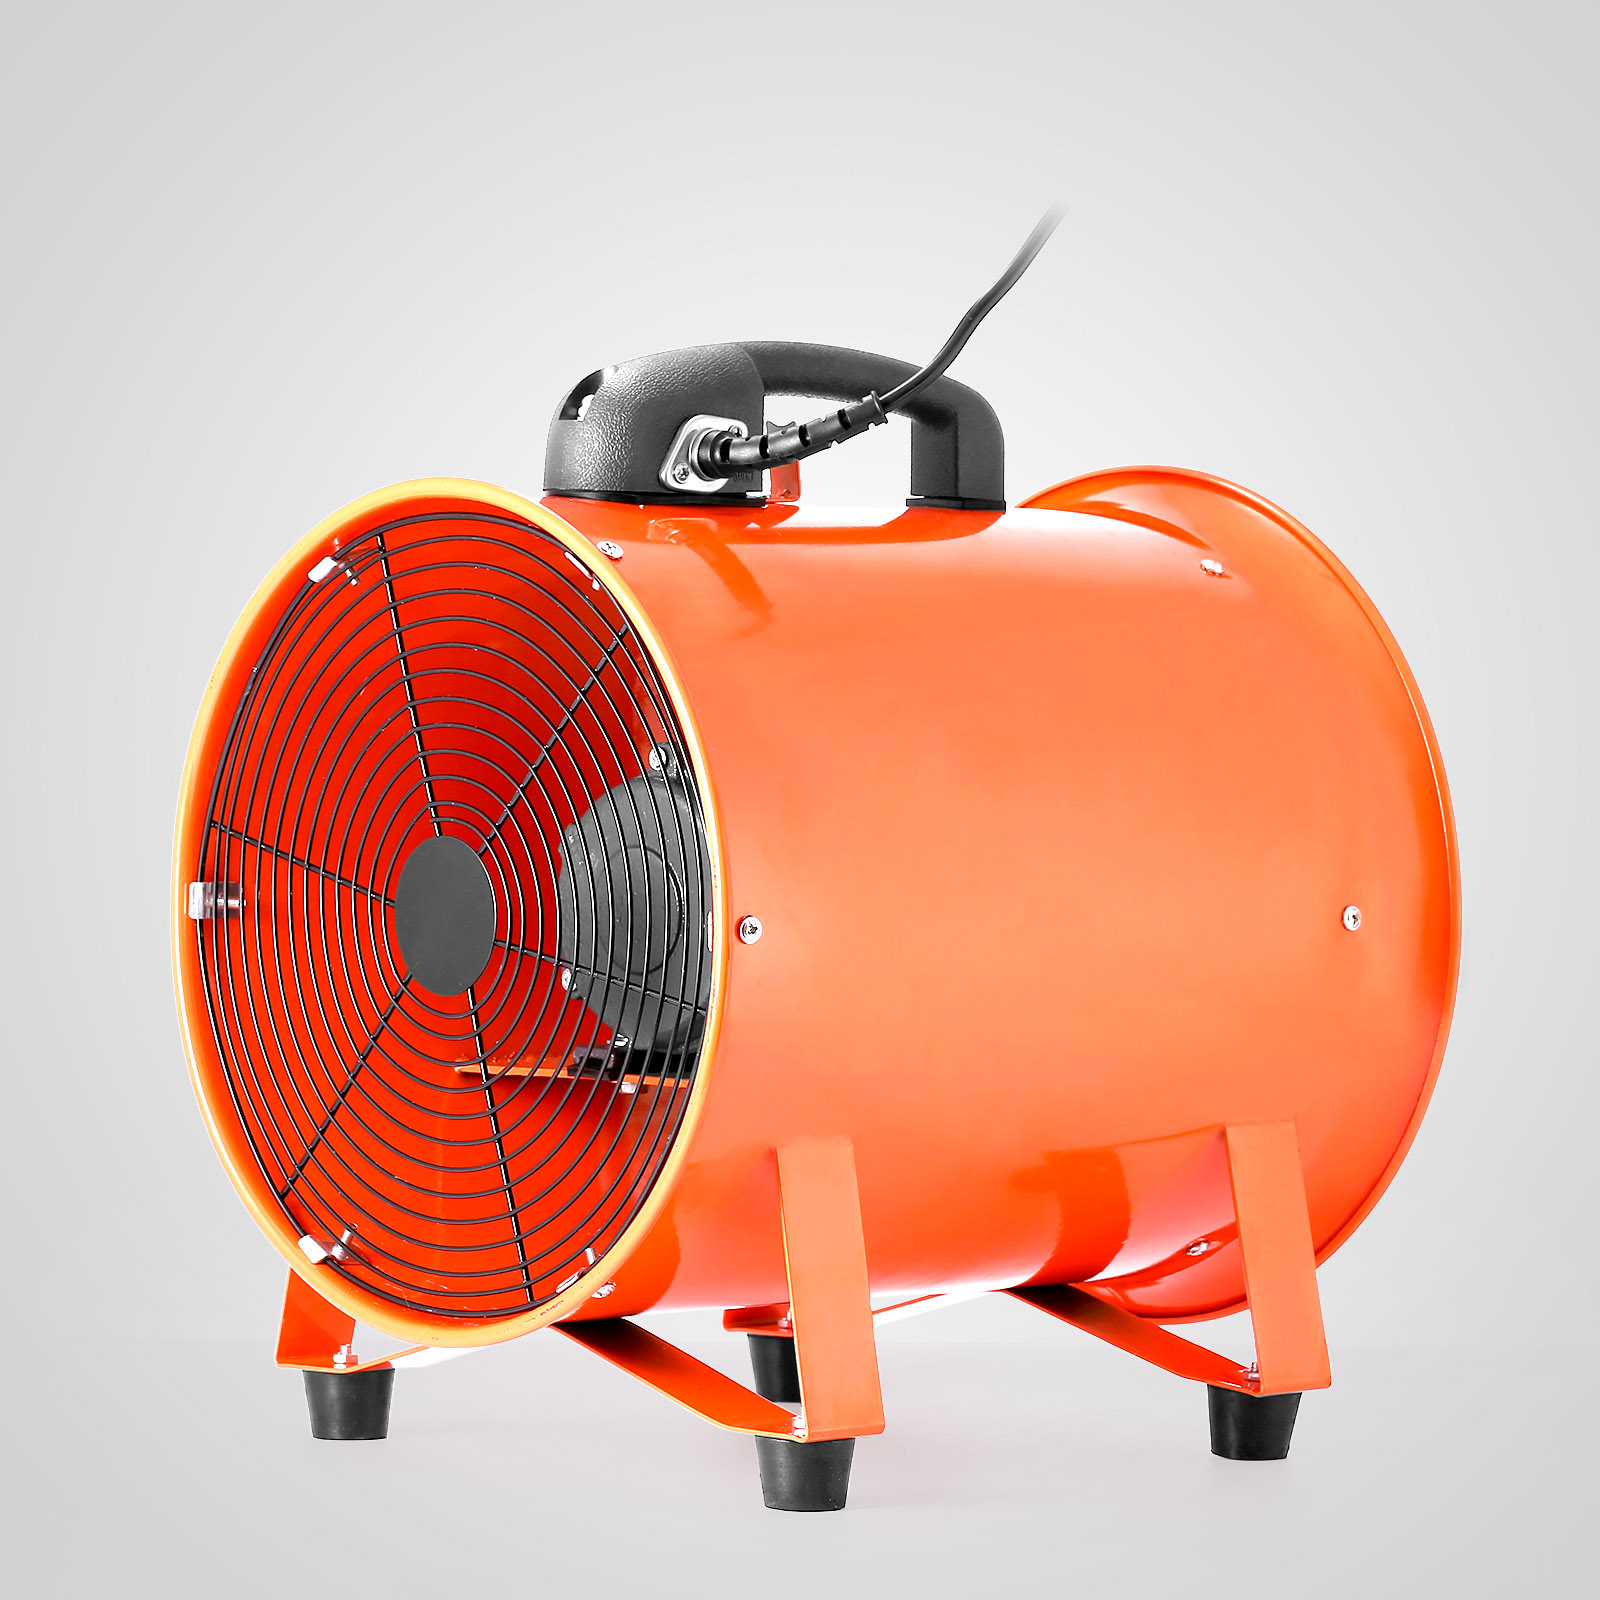 Axial Duct Fans : Portable industrial ventilator axial blower workshop